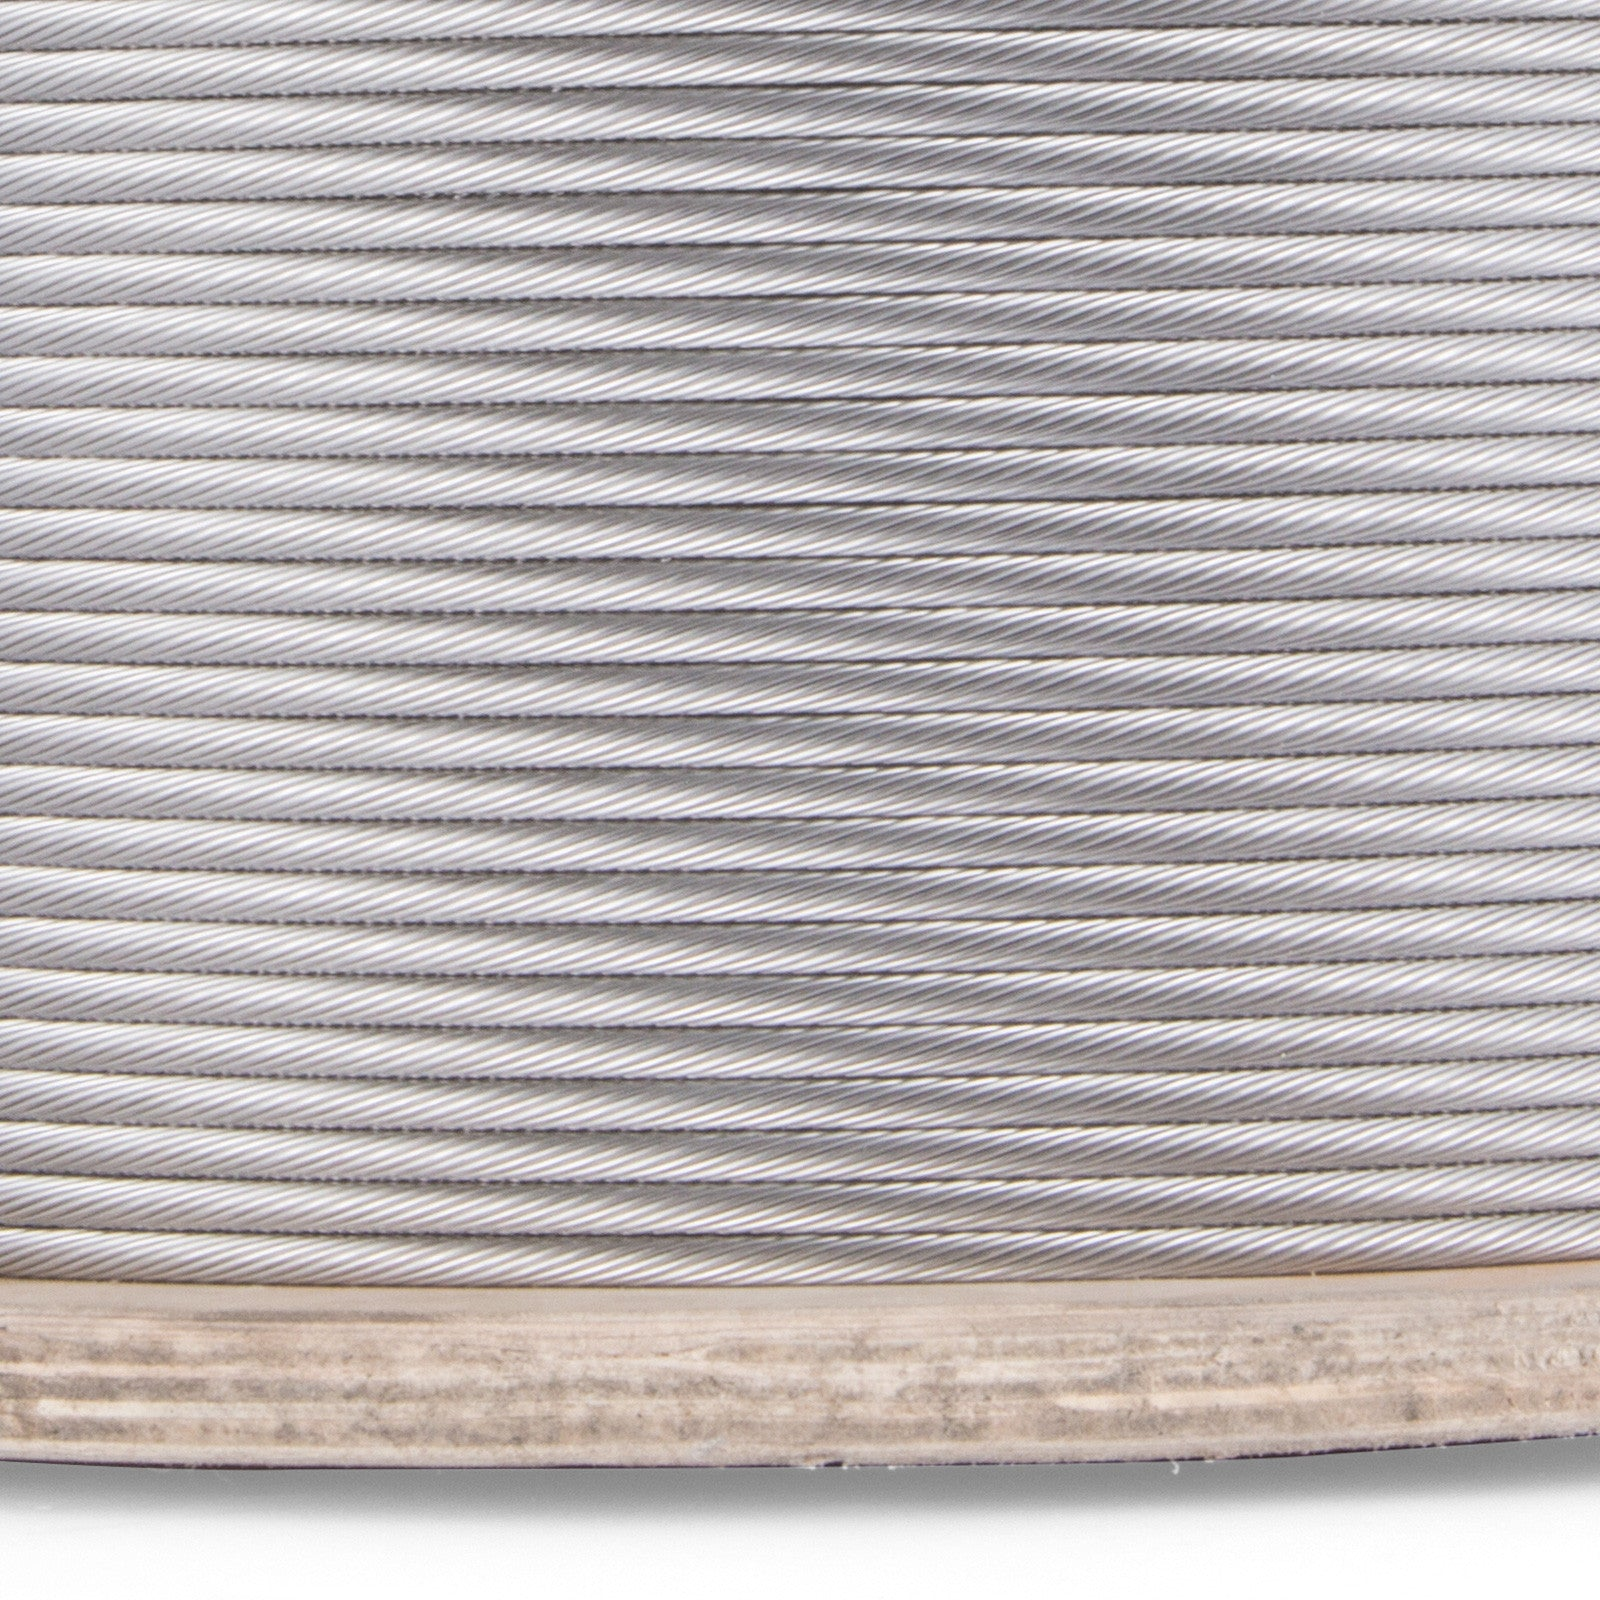 3/16 Stainless Steel Cable Wire Rope 1x19 Type 316 (1000 Feet)